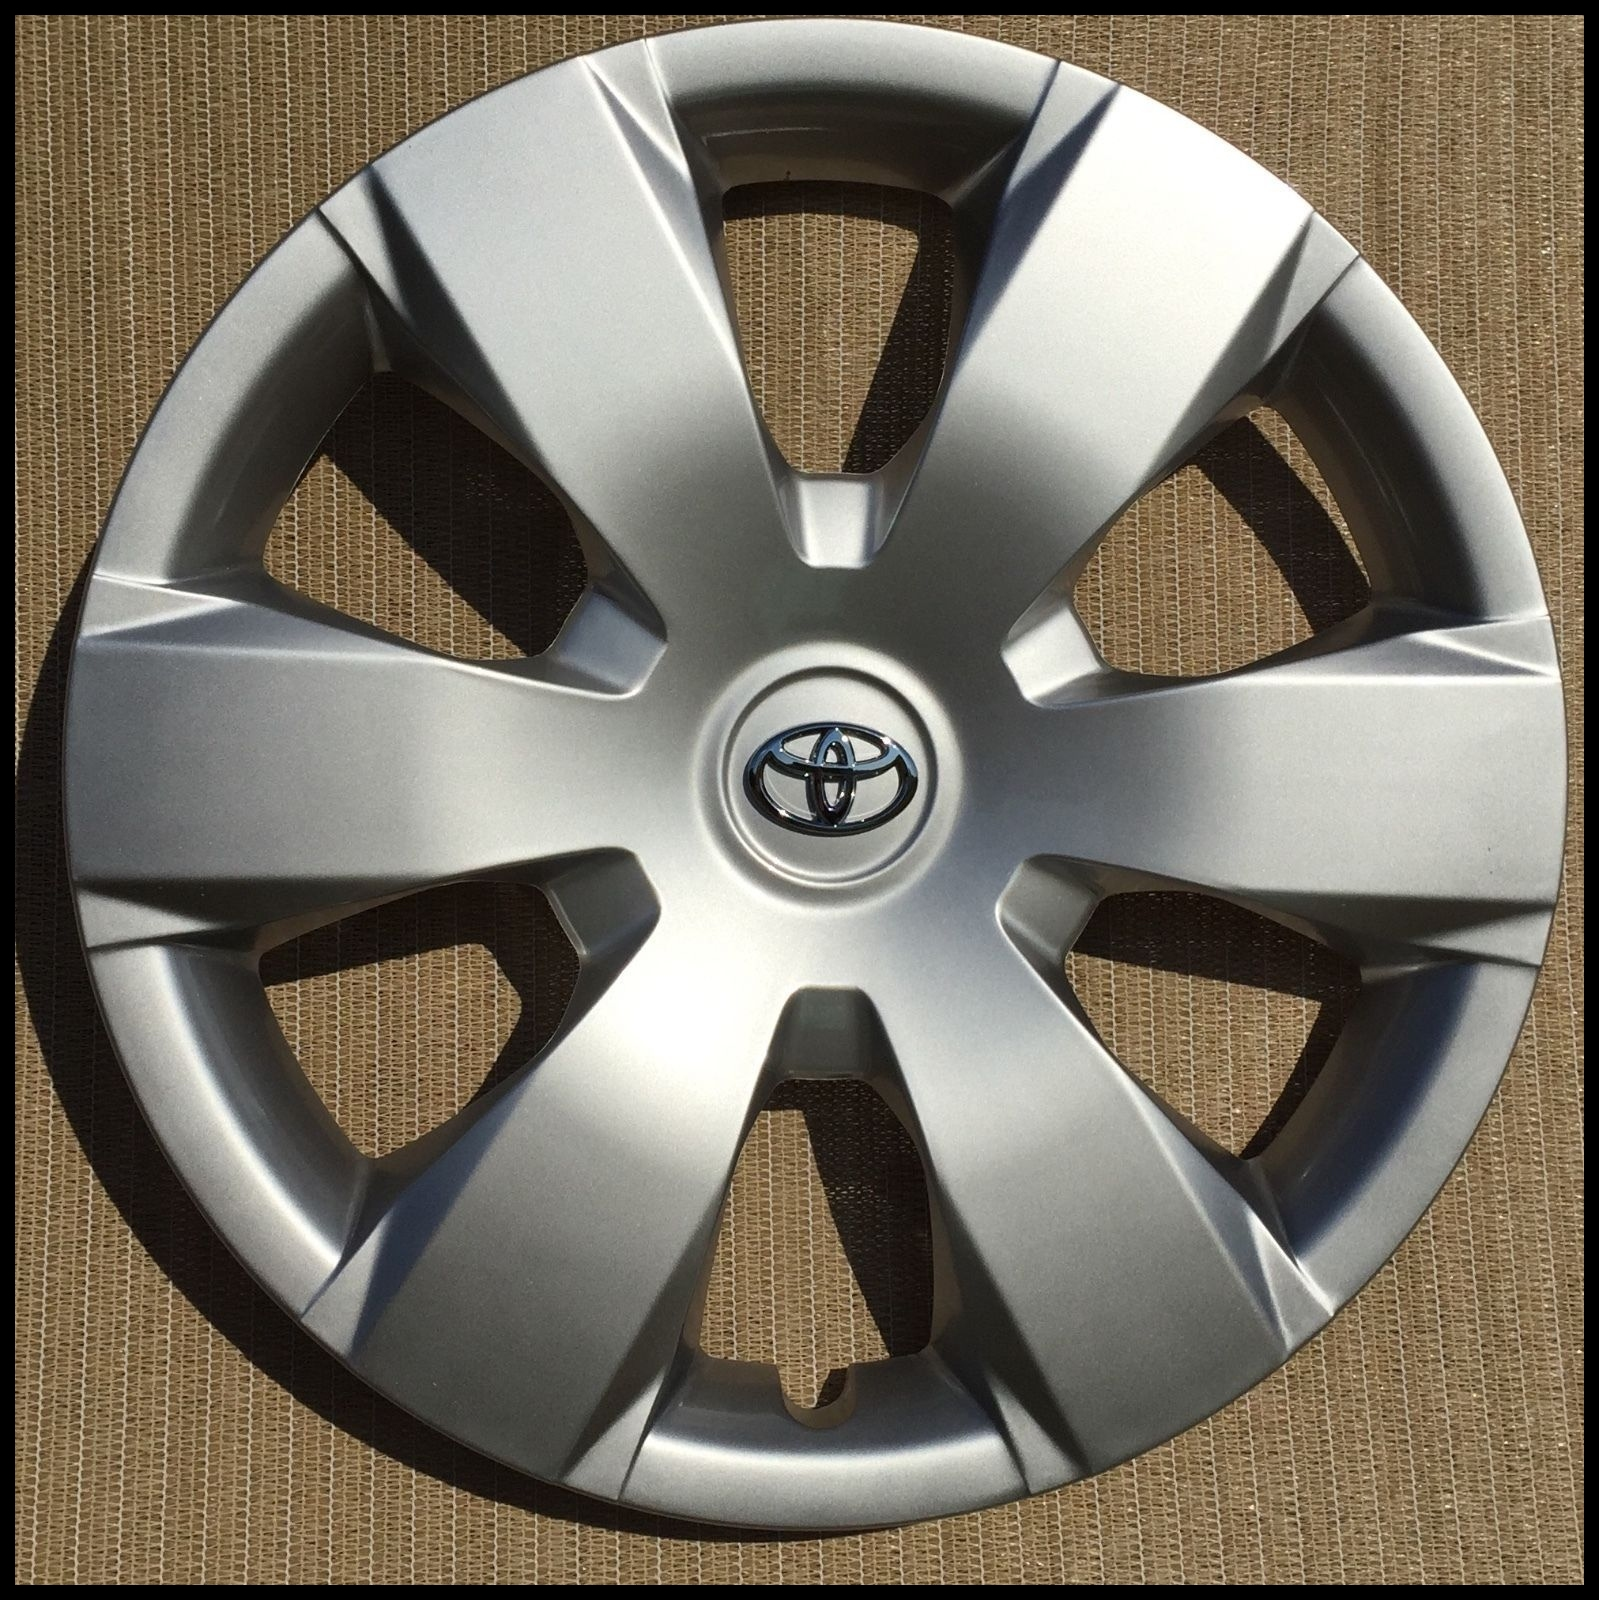 2006 toyota Camry Hubcaps Nice Awesome 16 Hubcap Wheelcover Fits 2007 2011 toyota Camry 2017